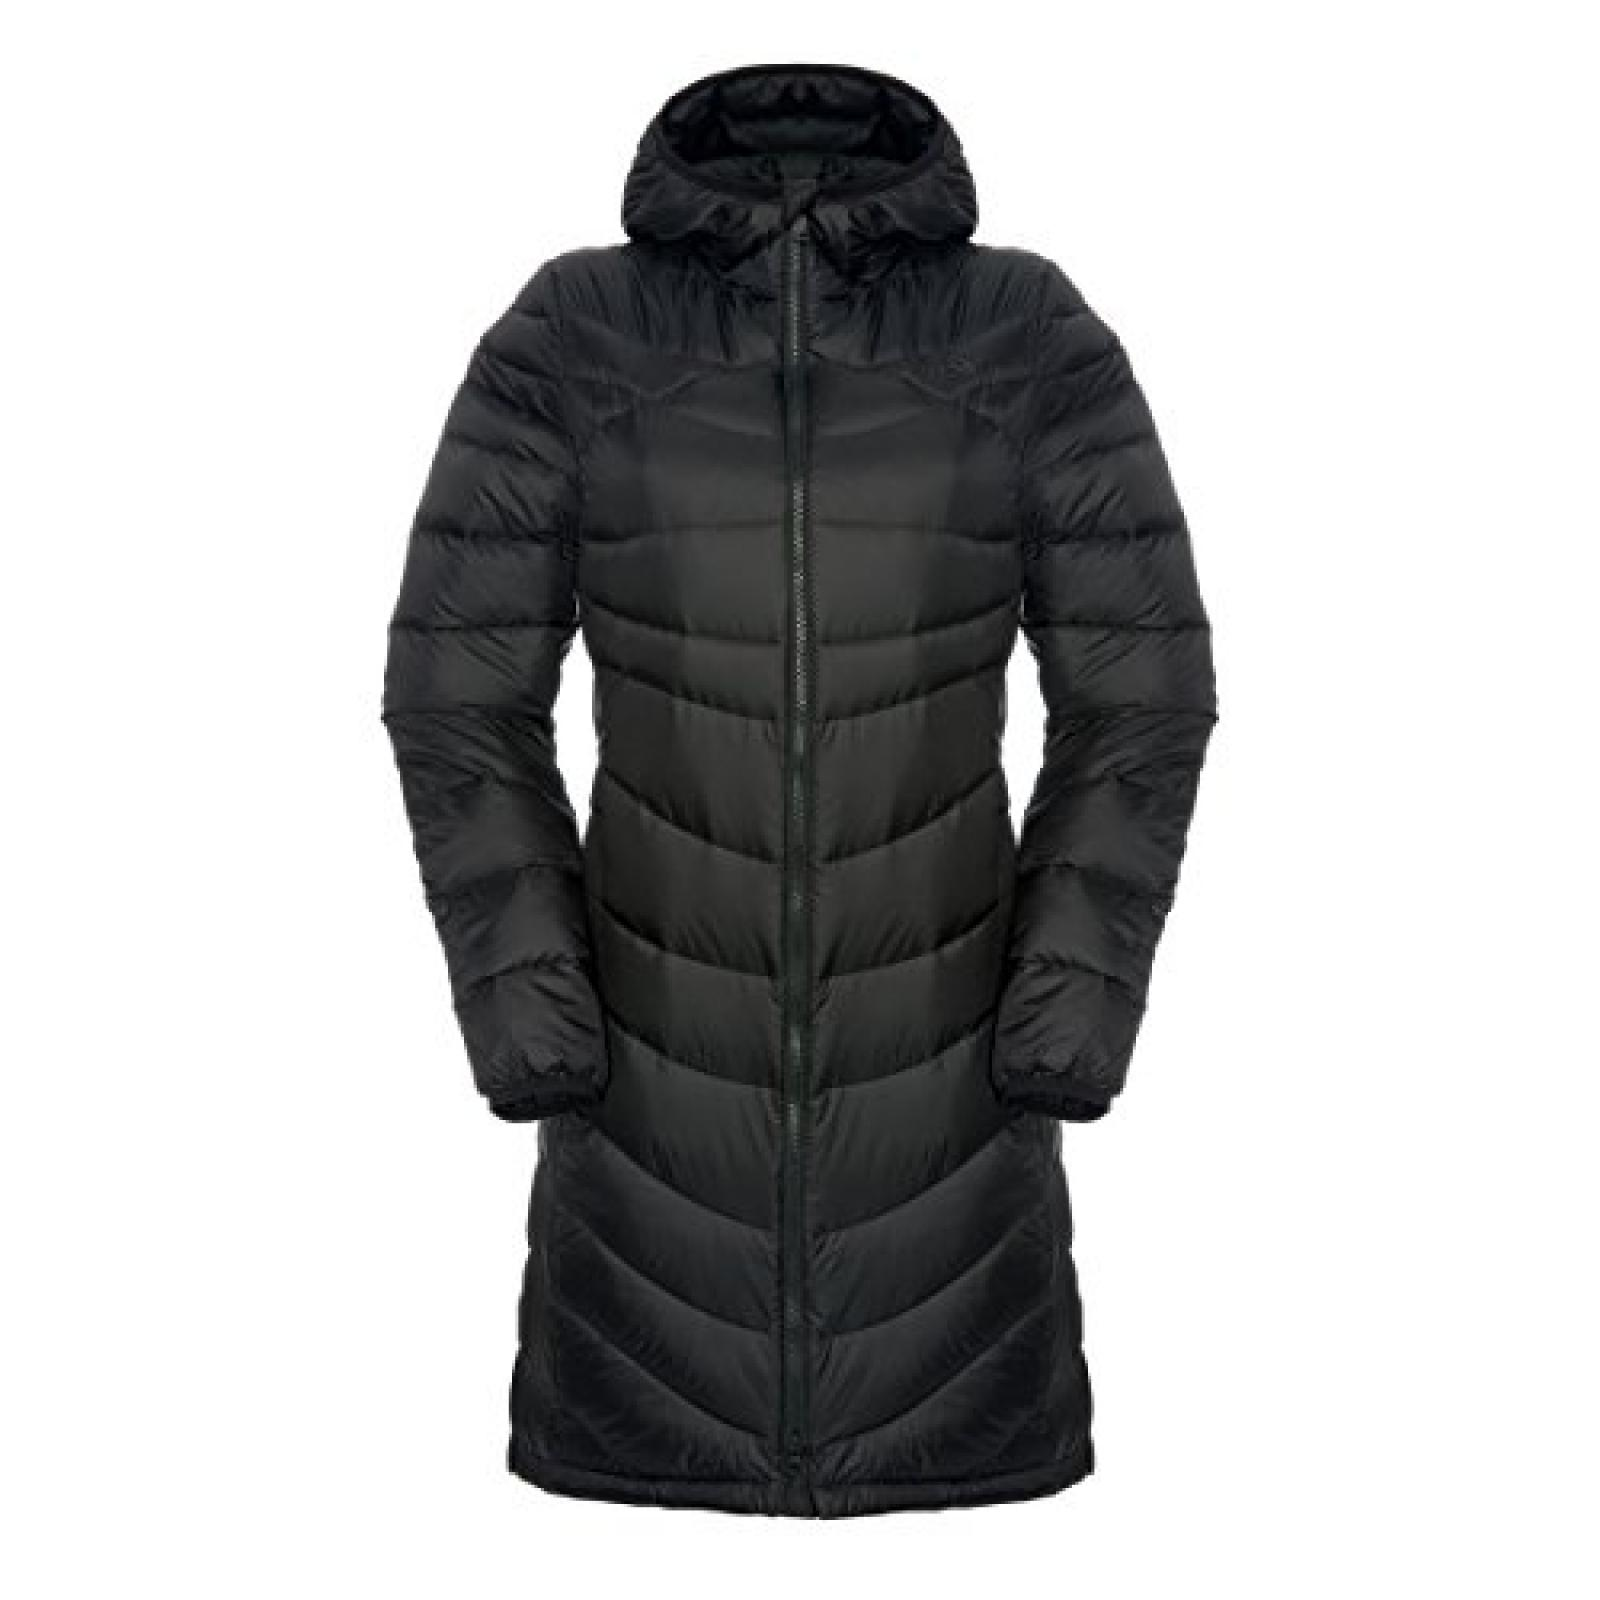 The North Face Upper West Side Jacket Women - Daunenmantel